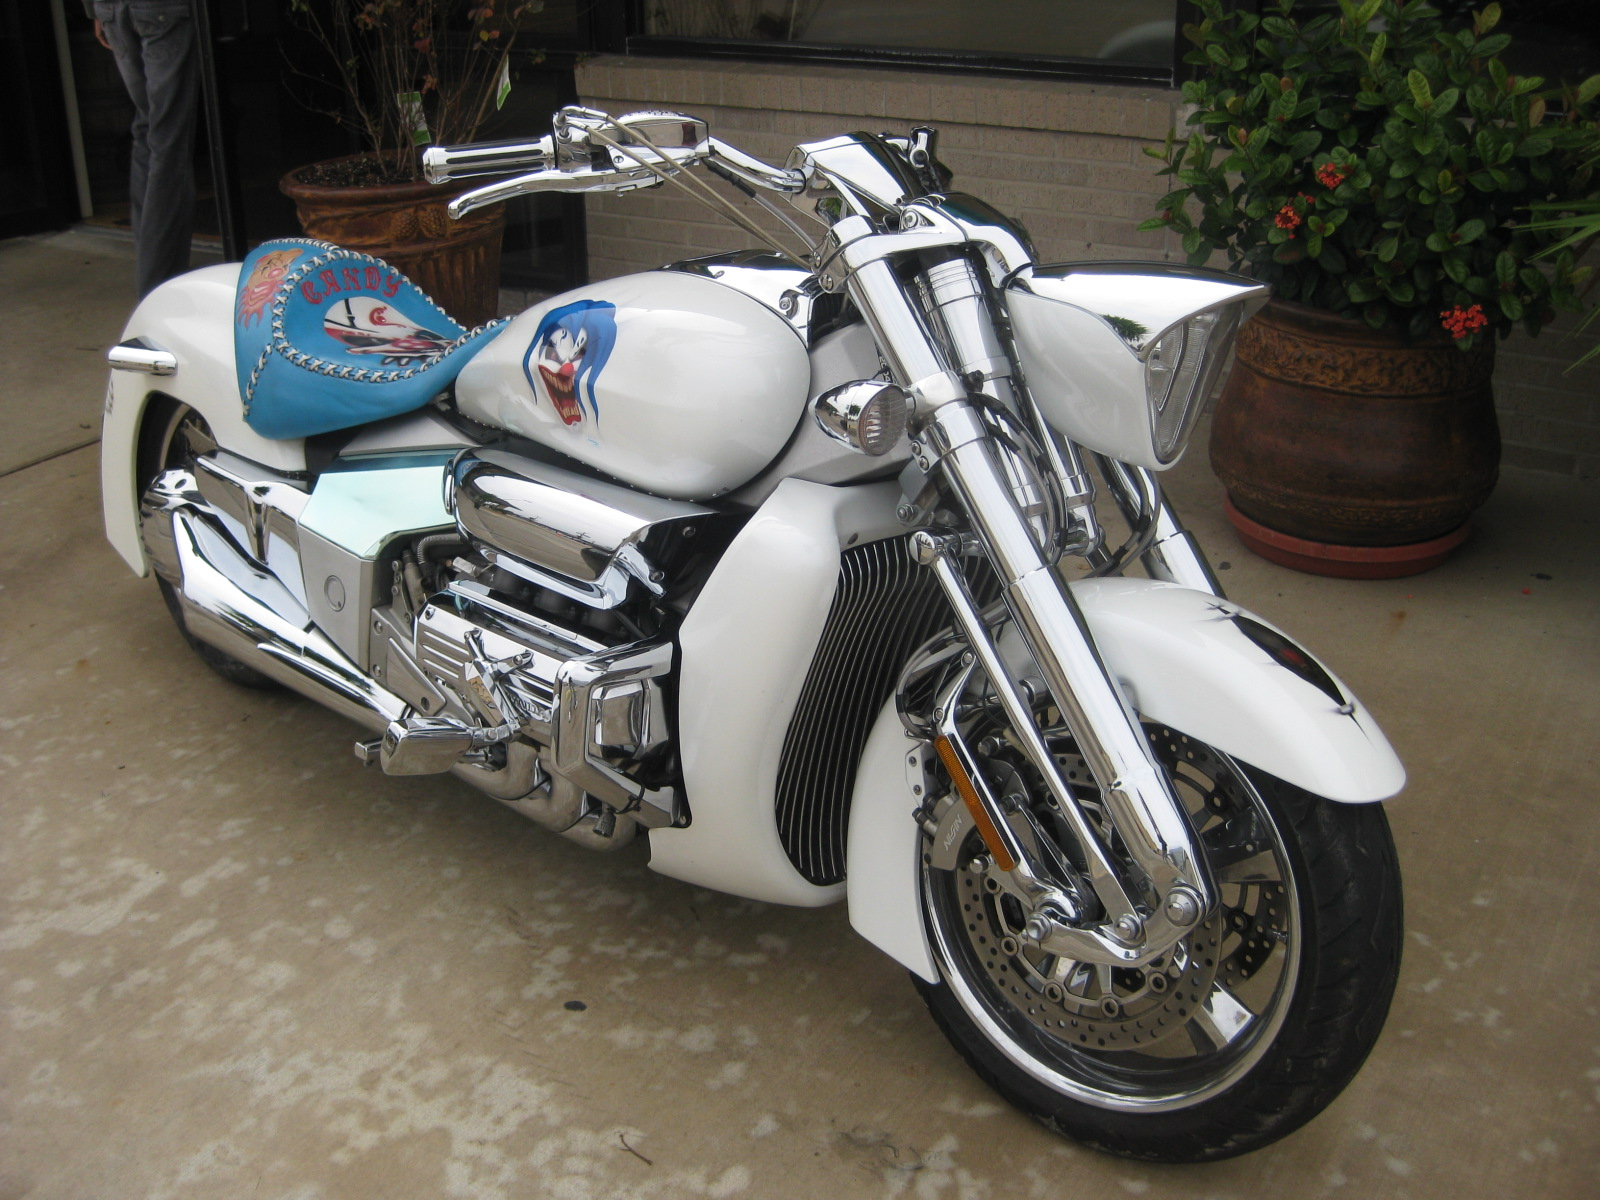 Back Honda Valkyrie Rune Picture 4 Size 1600x1200 Next